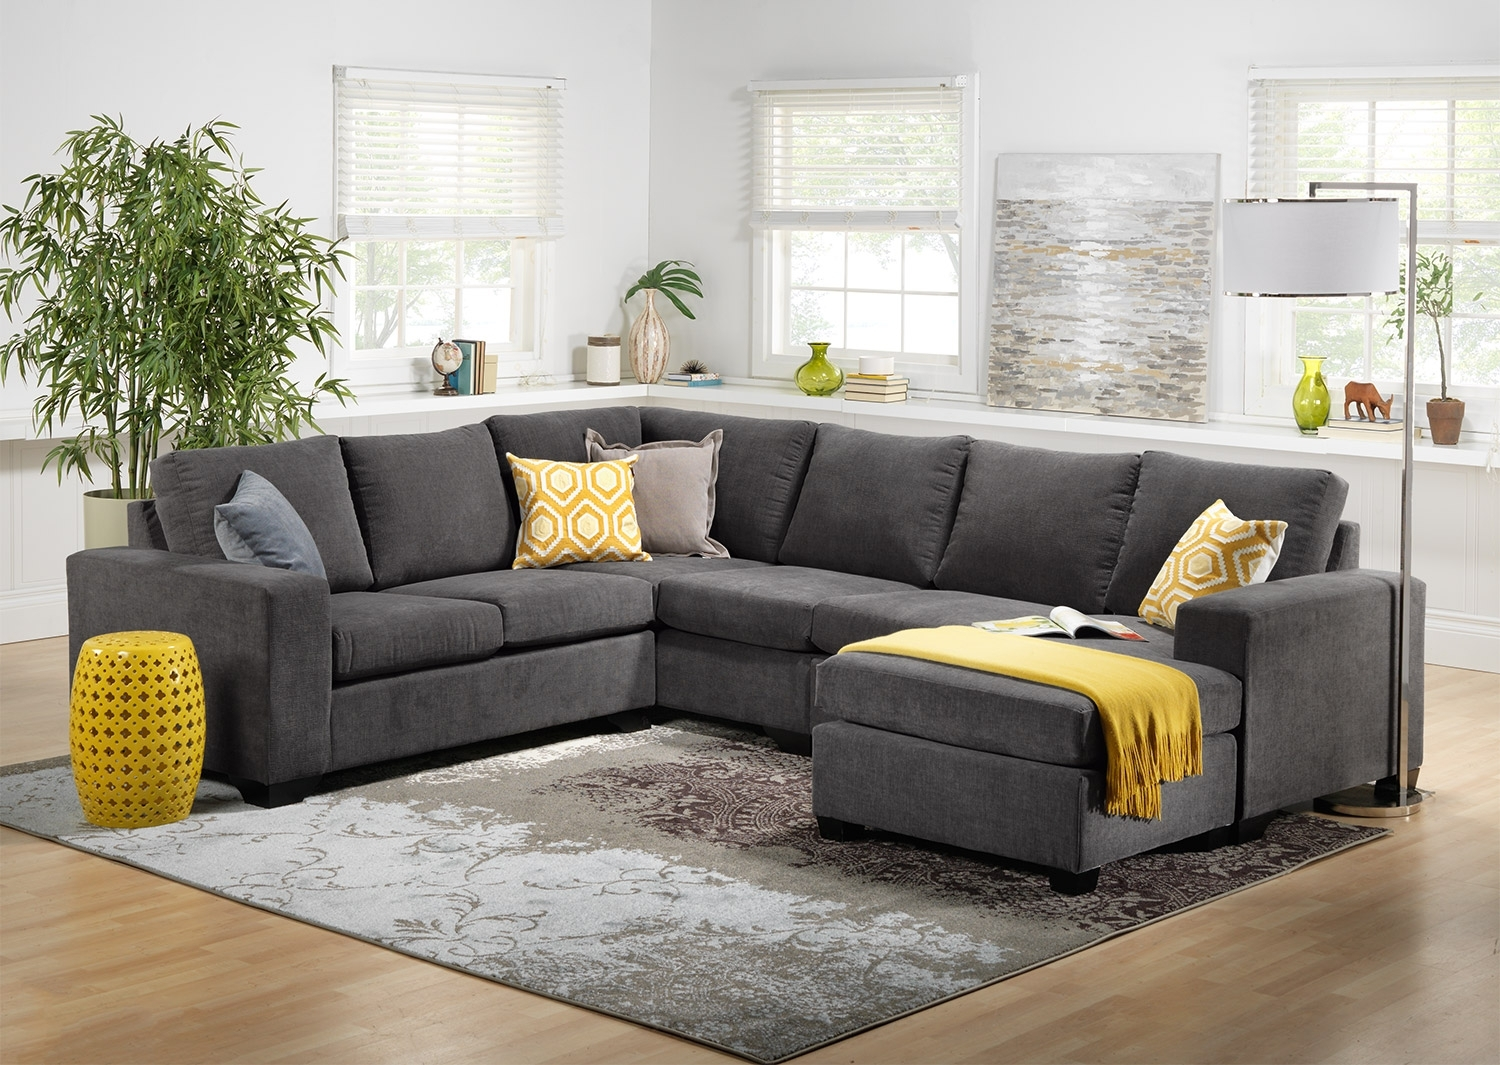 Contemporary Sectional Sofas Canada | Functionalities inside Sectional Sofas in Canada (Image 1 of 10)